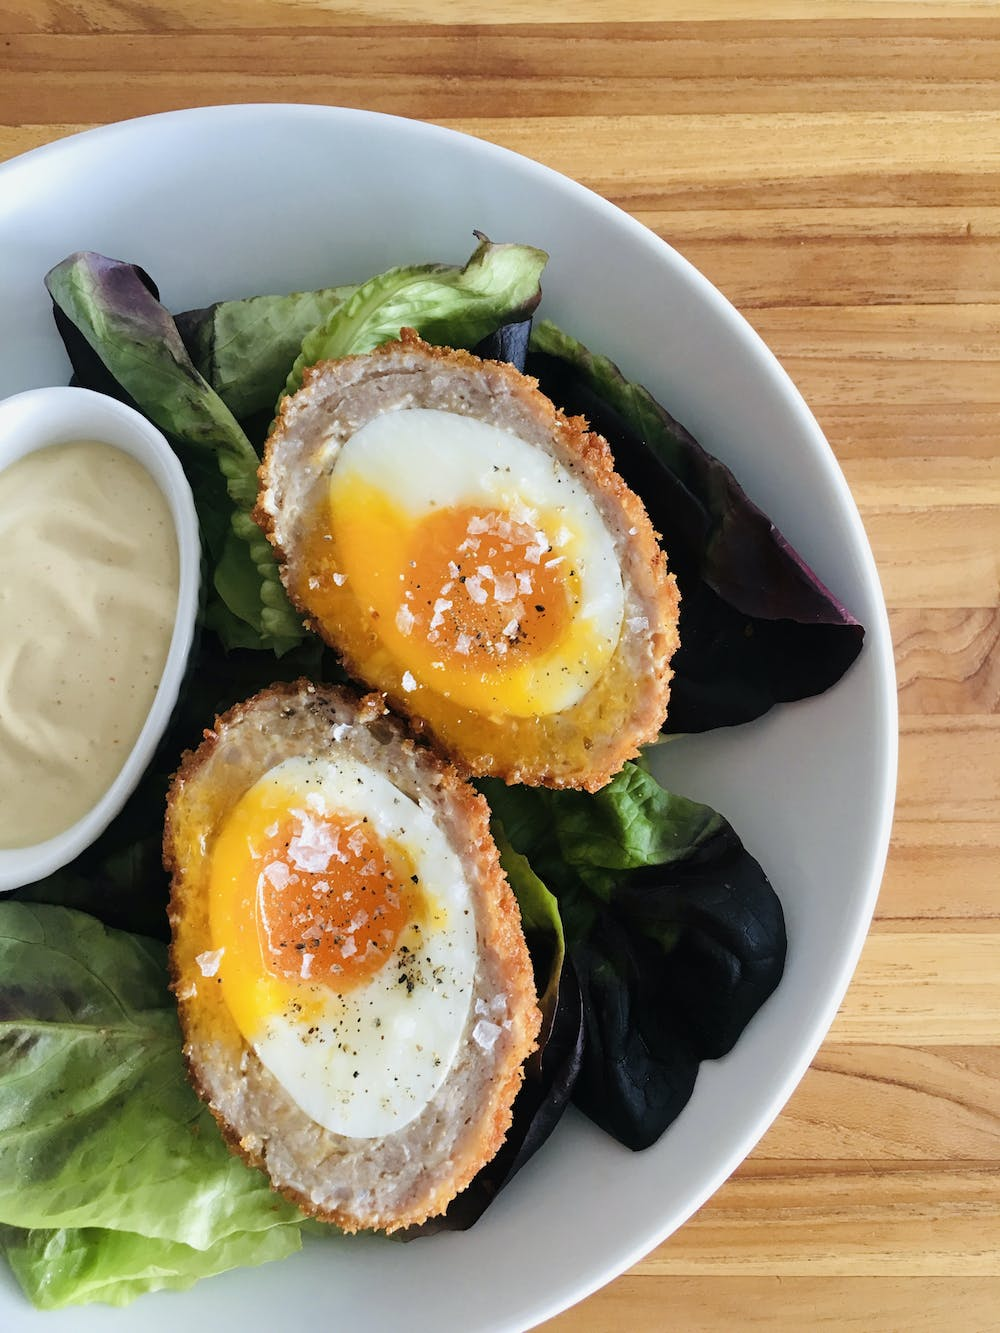 scotch eggs on a plate with salad and mustard sauce